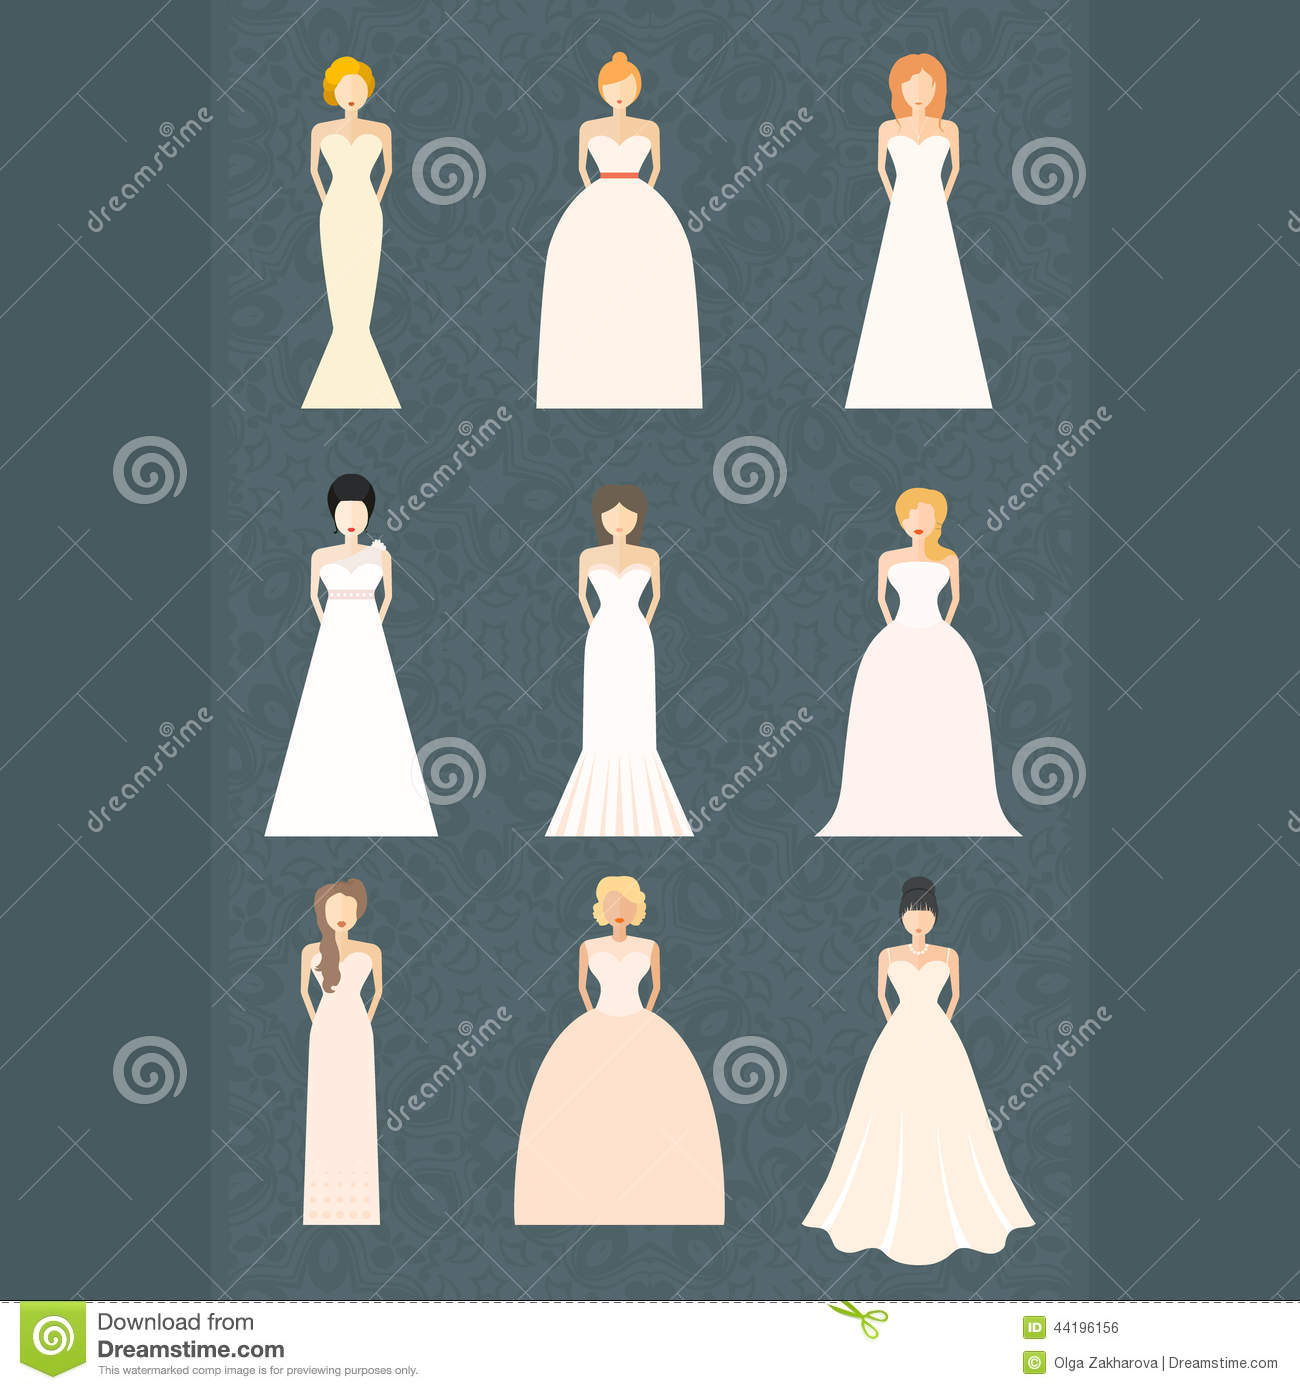 in different styles of wedding dresses made in modern flat style